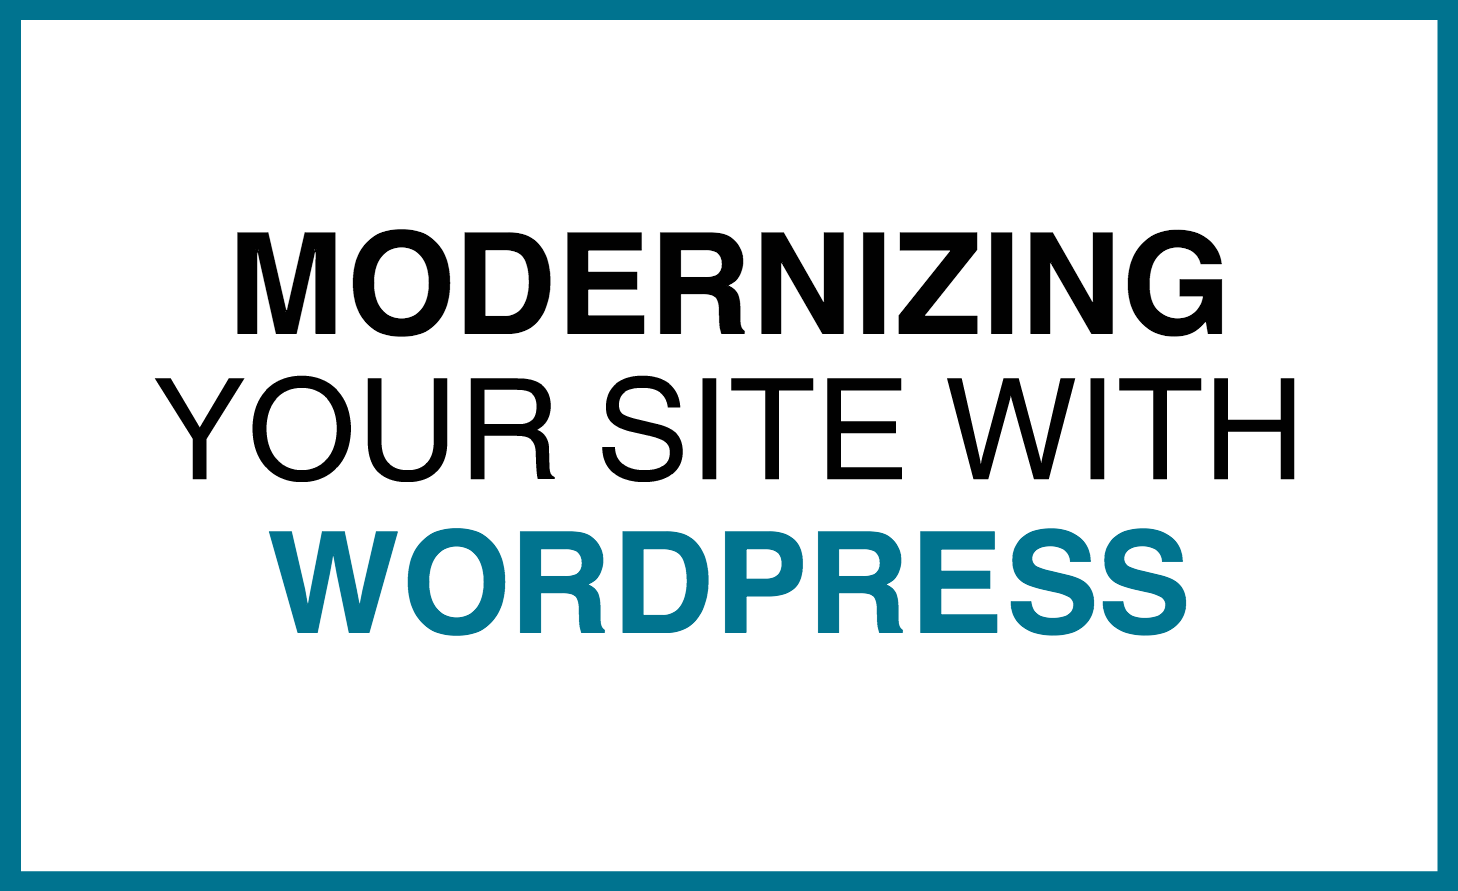 modernizing with wordpress.png